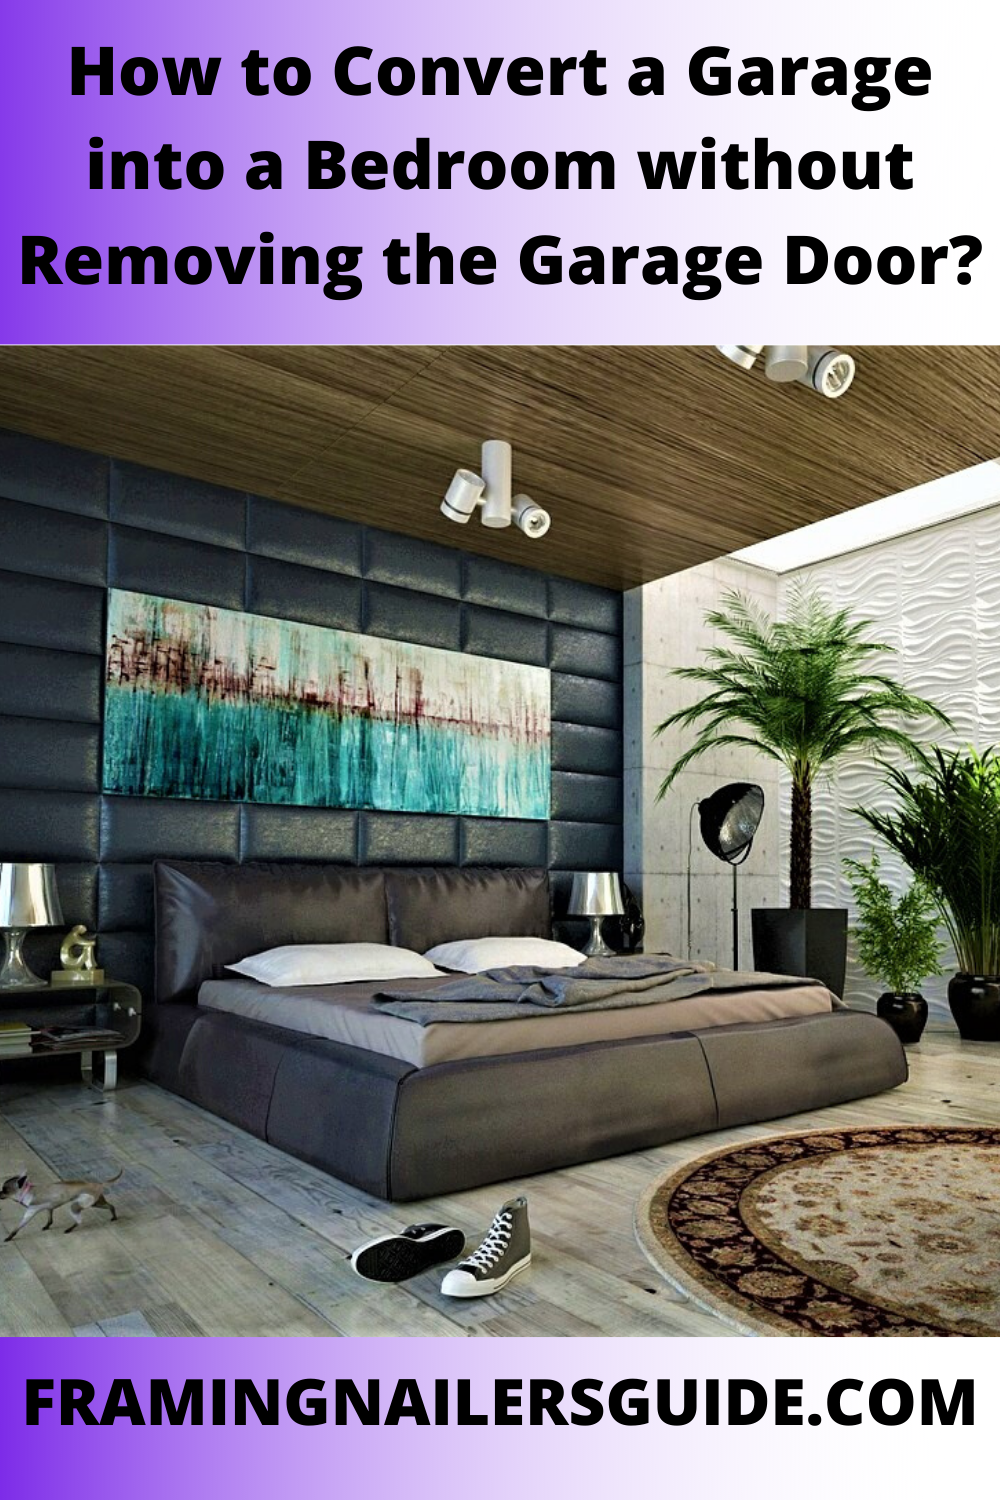 How To Convert A Garage Into A Bedroom Without Removing The Garage Door In 2020 Garage Doors Garage Bedroom Garage Bedroom Conversion